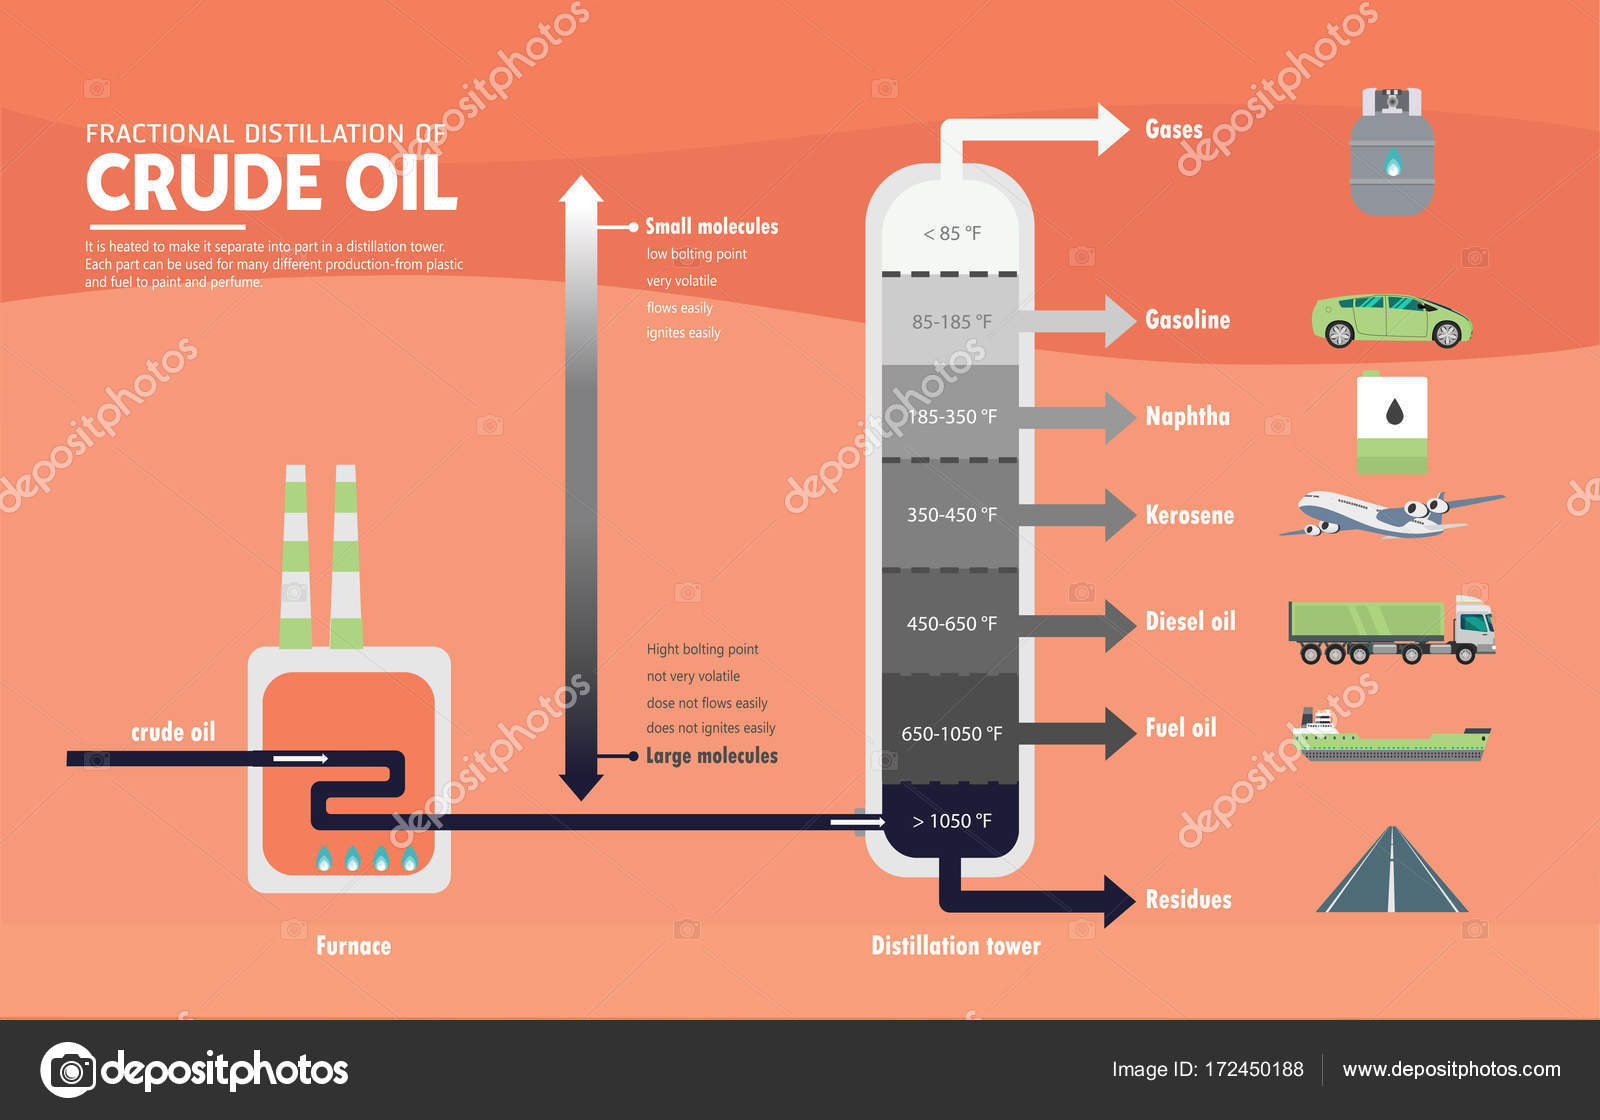 6 Advantages and Disadvantages of Fractional Distillation